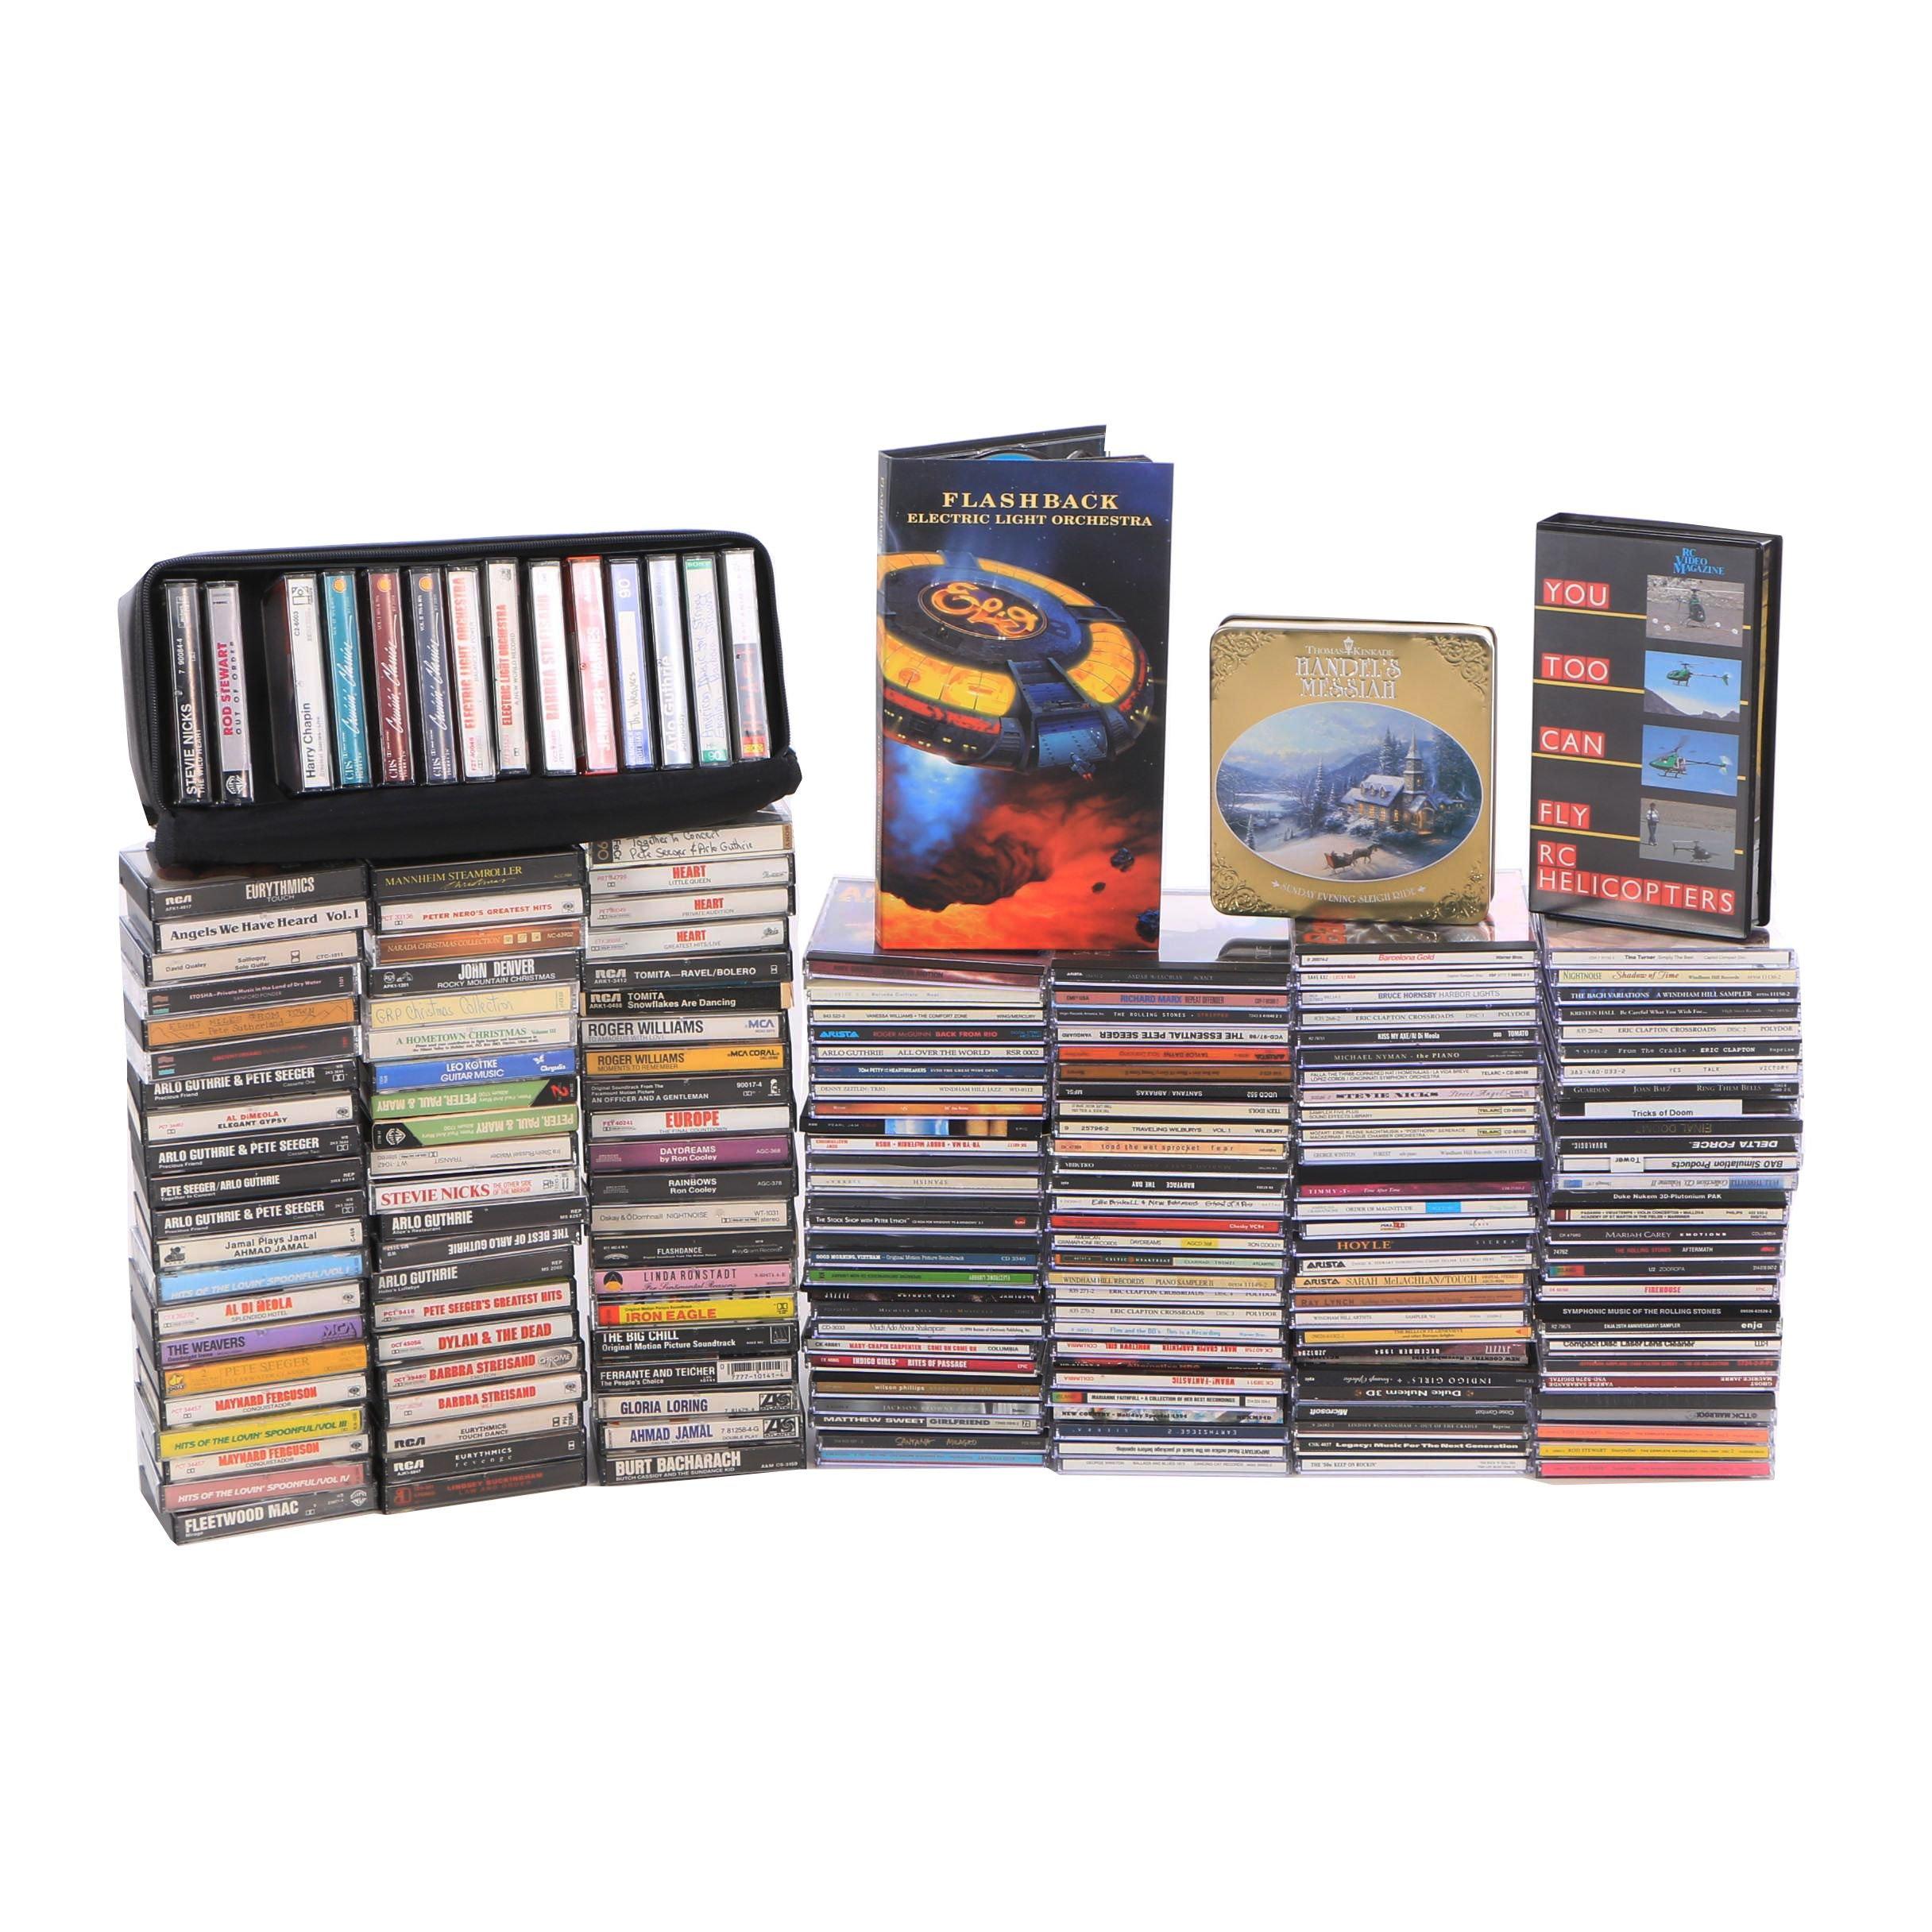 """ELO """"Flashback"""" CD Boxed Set with Other Vintage CDs and Cassettes"""